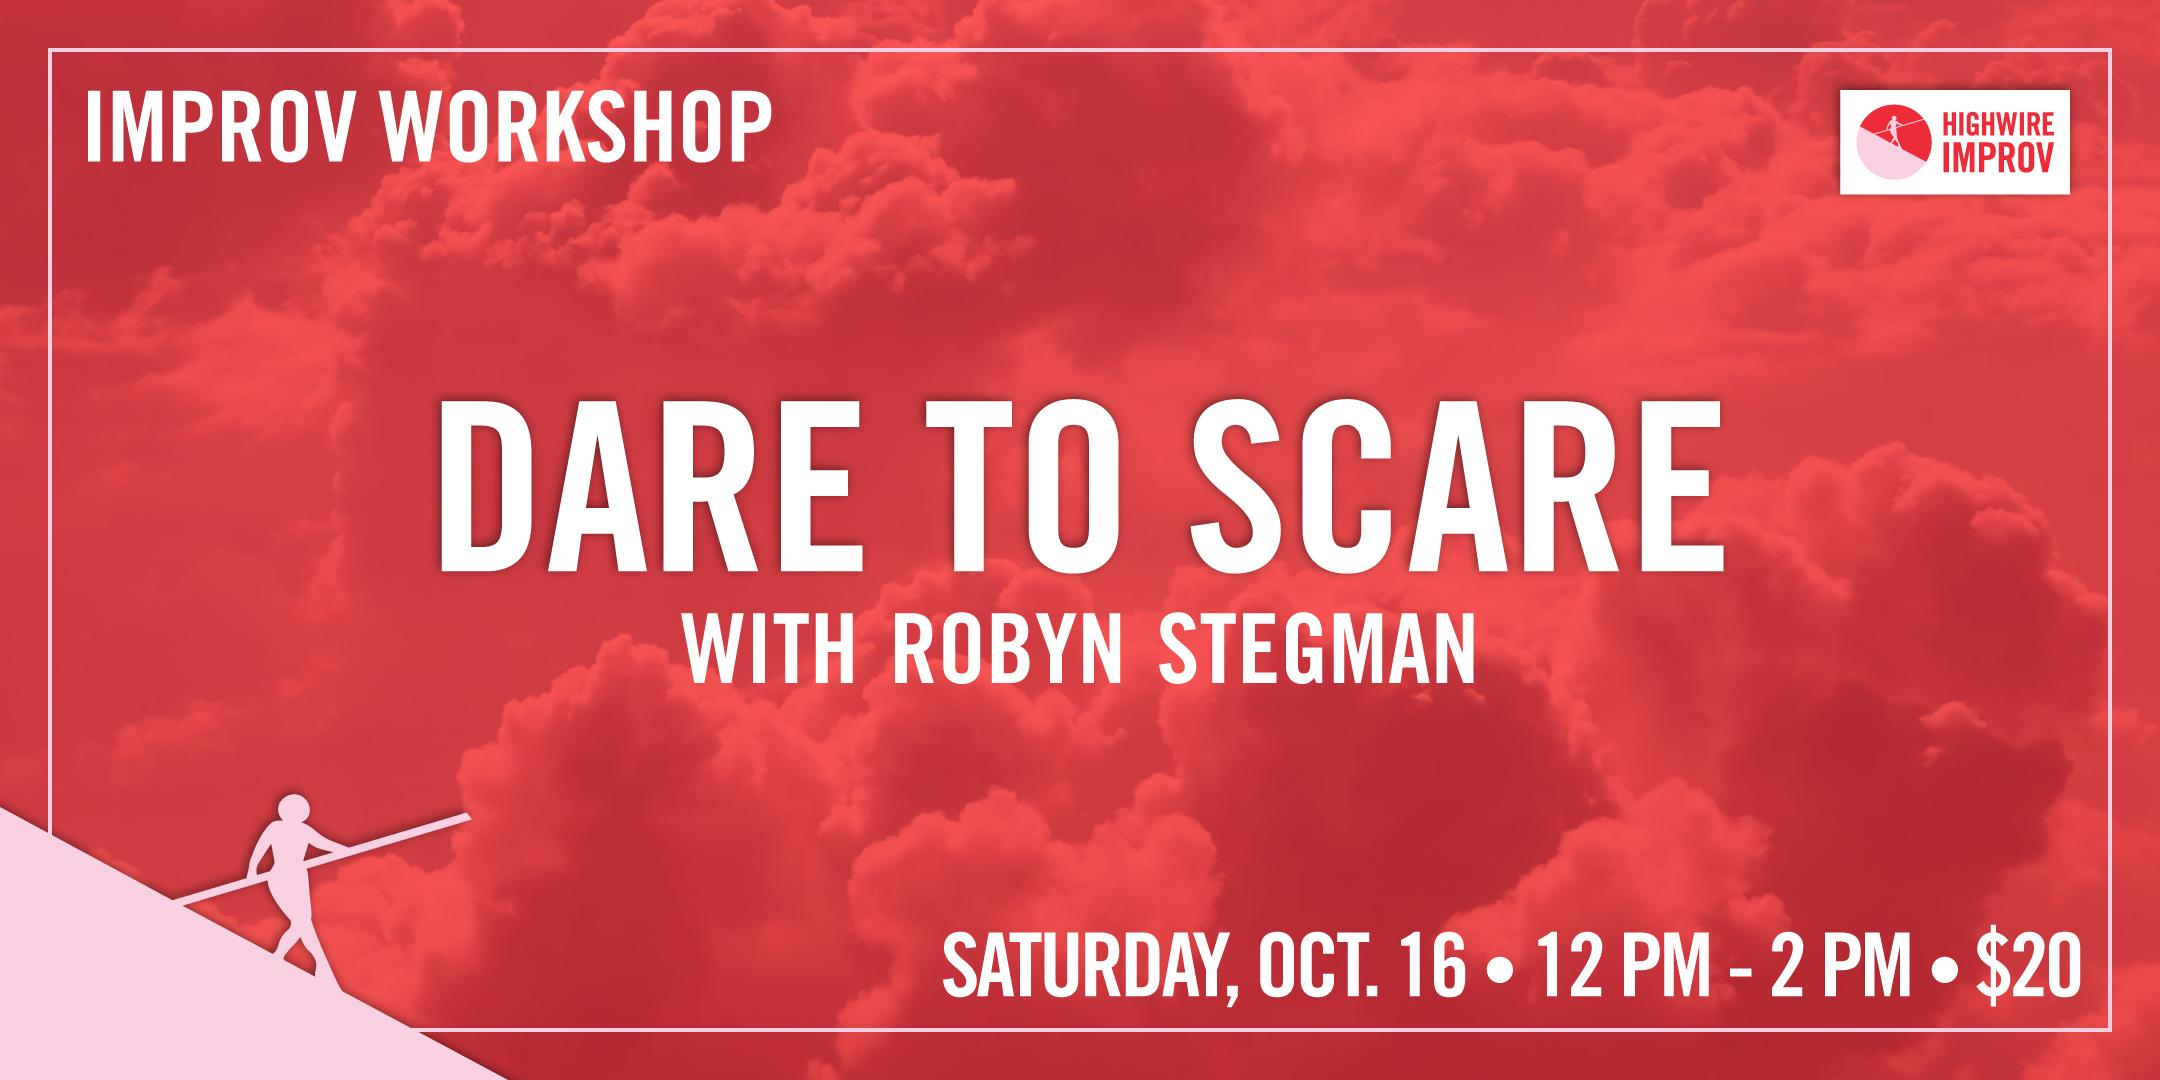 Dare to Scare! with Robyn Stegman